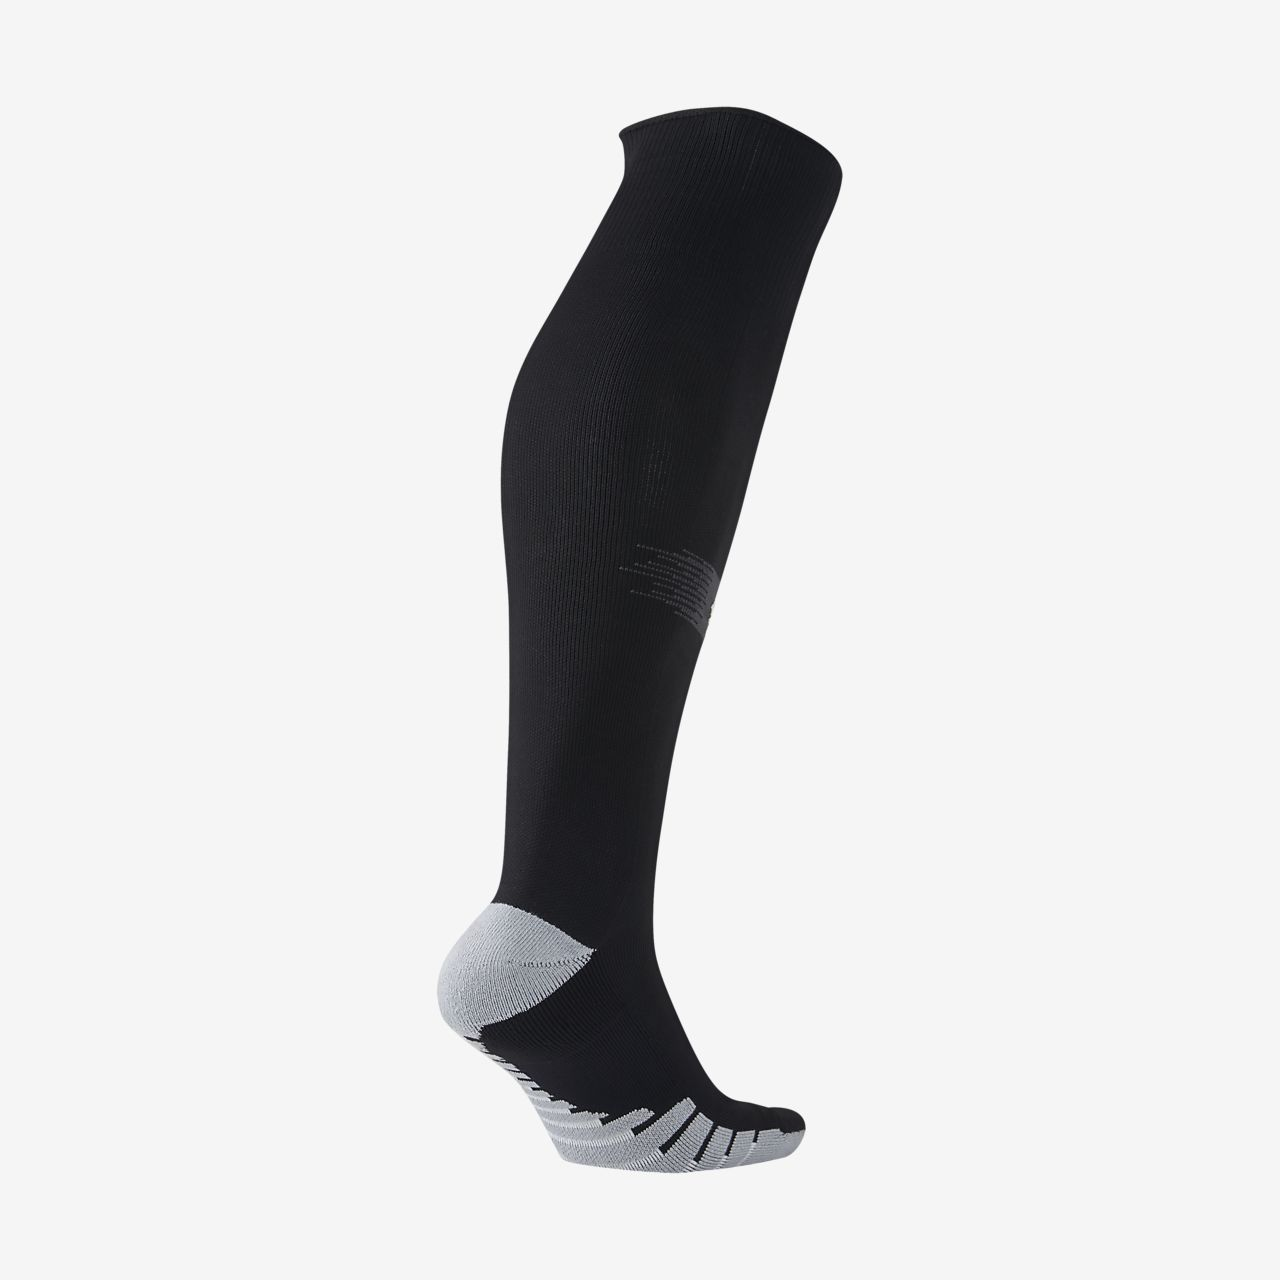 2018/19 Eintracht Frankfurt Stadium Home Over-the-Calf Football Socks